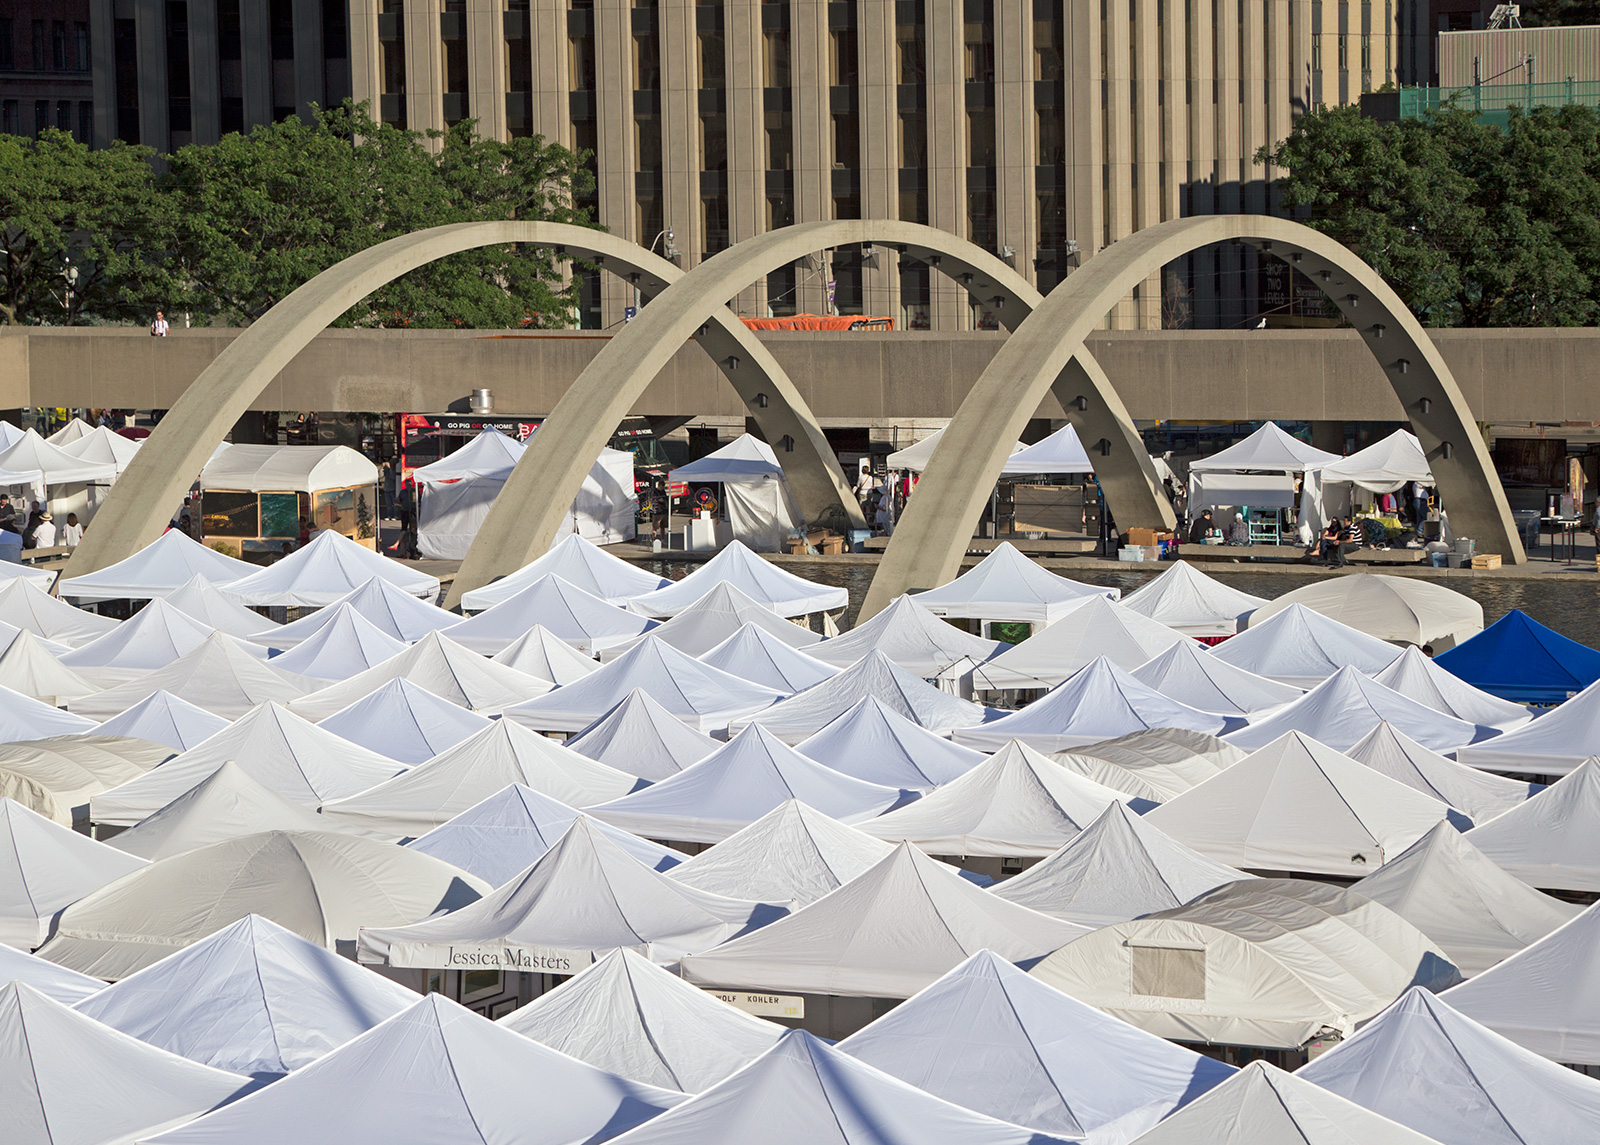 20140705. A sea of tents at the Toronto Outdoor Art Exhibition at Nathan Phillips Square.